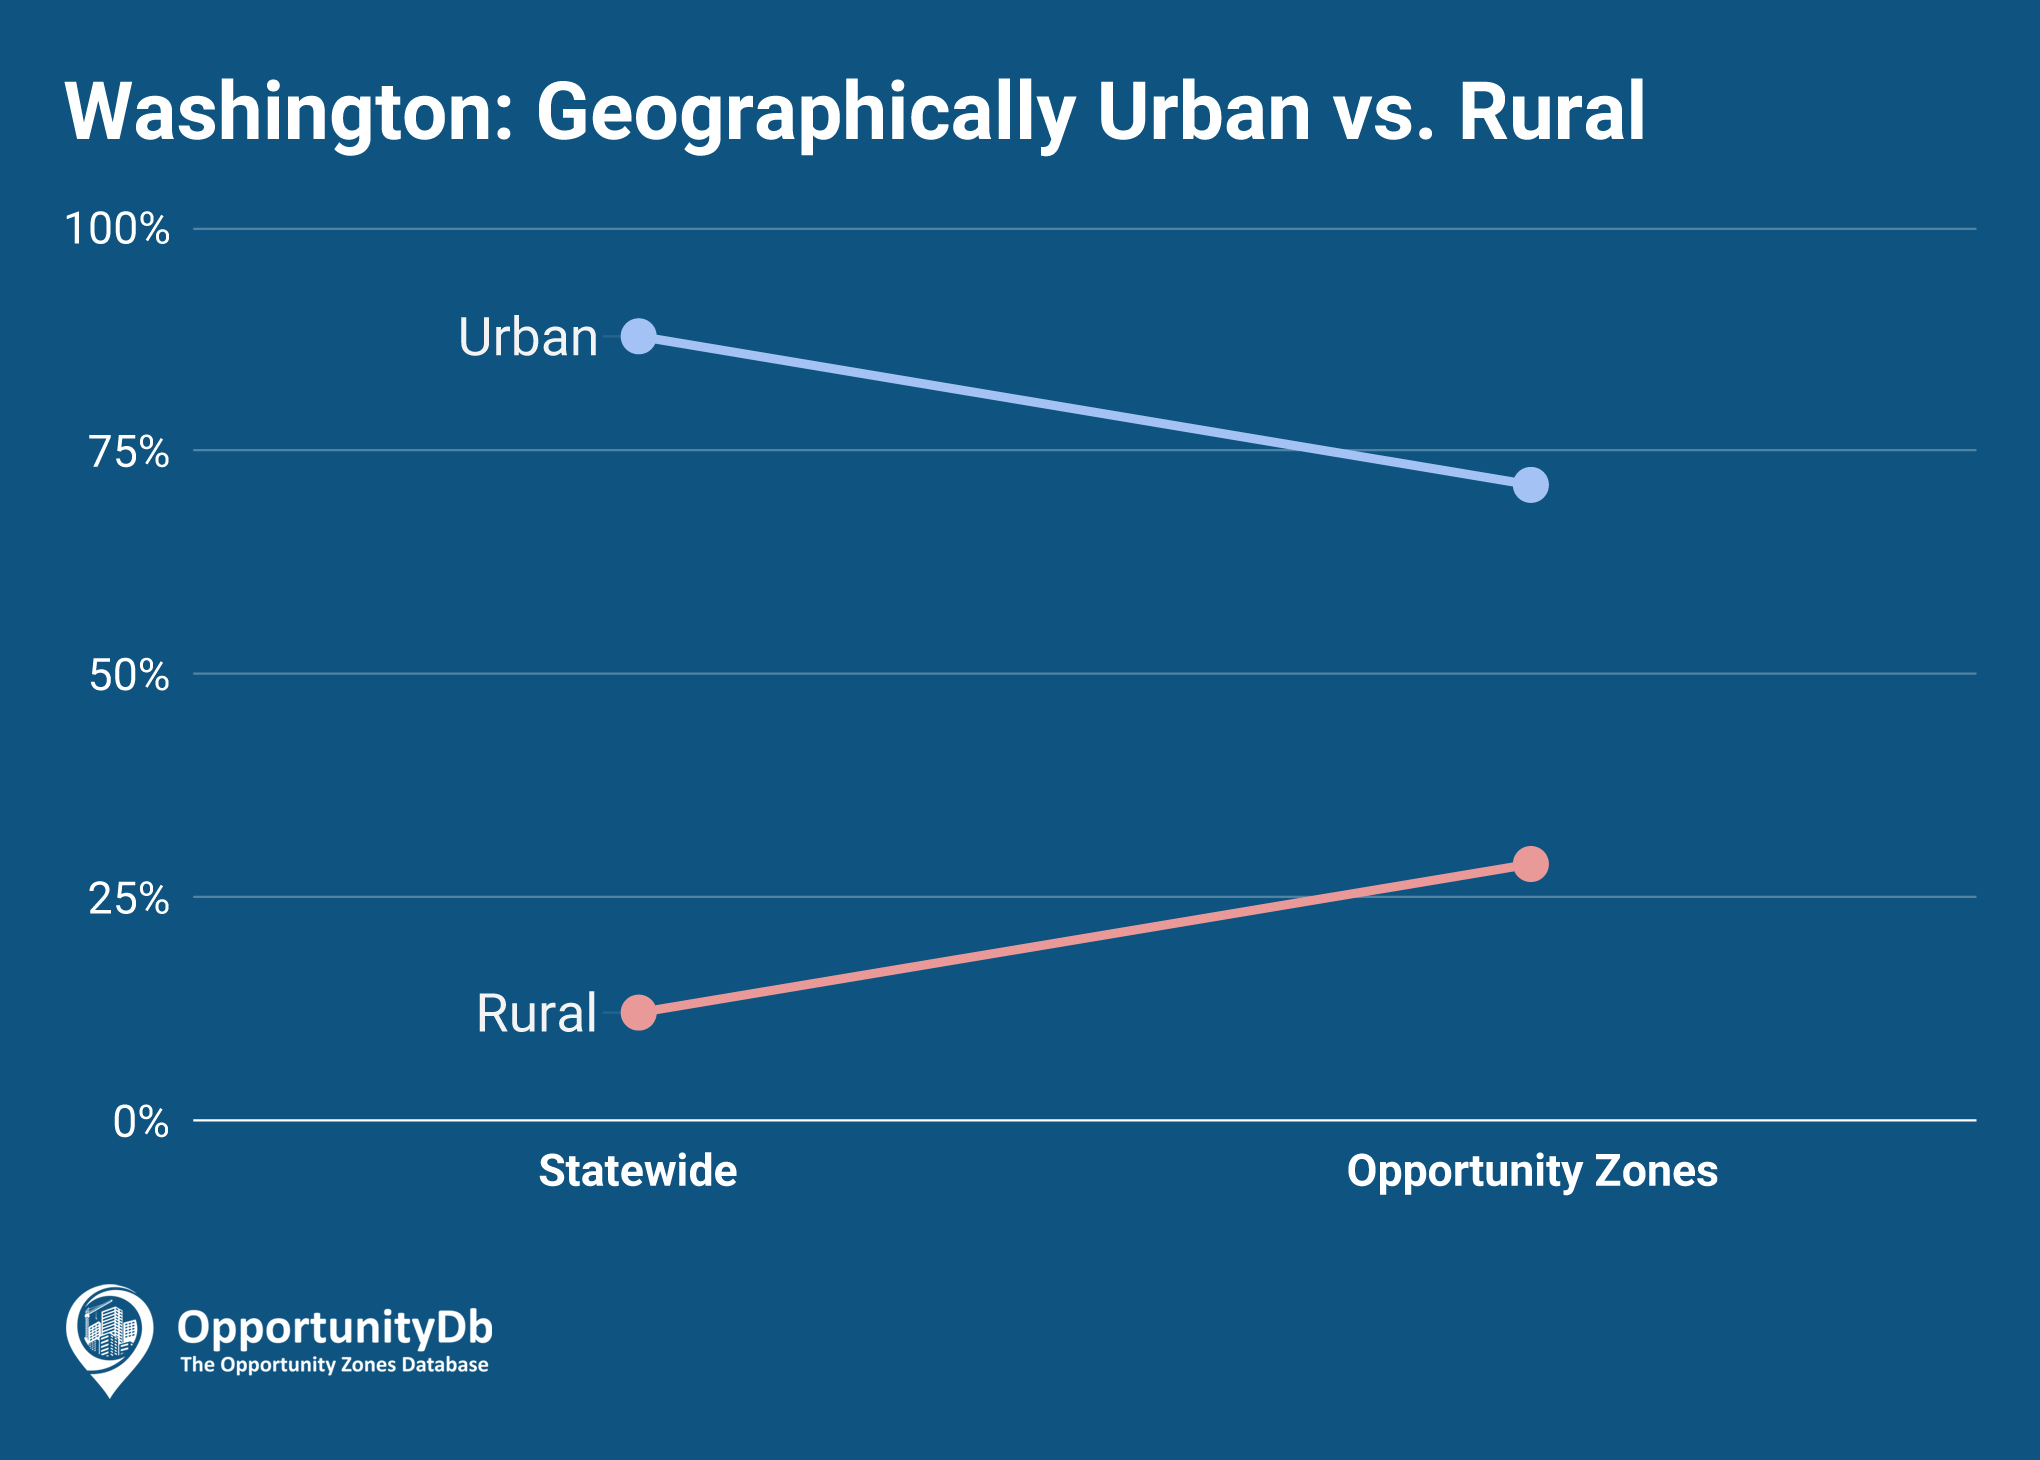 Urban vs. Rural in Washington Opportunity Zones